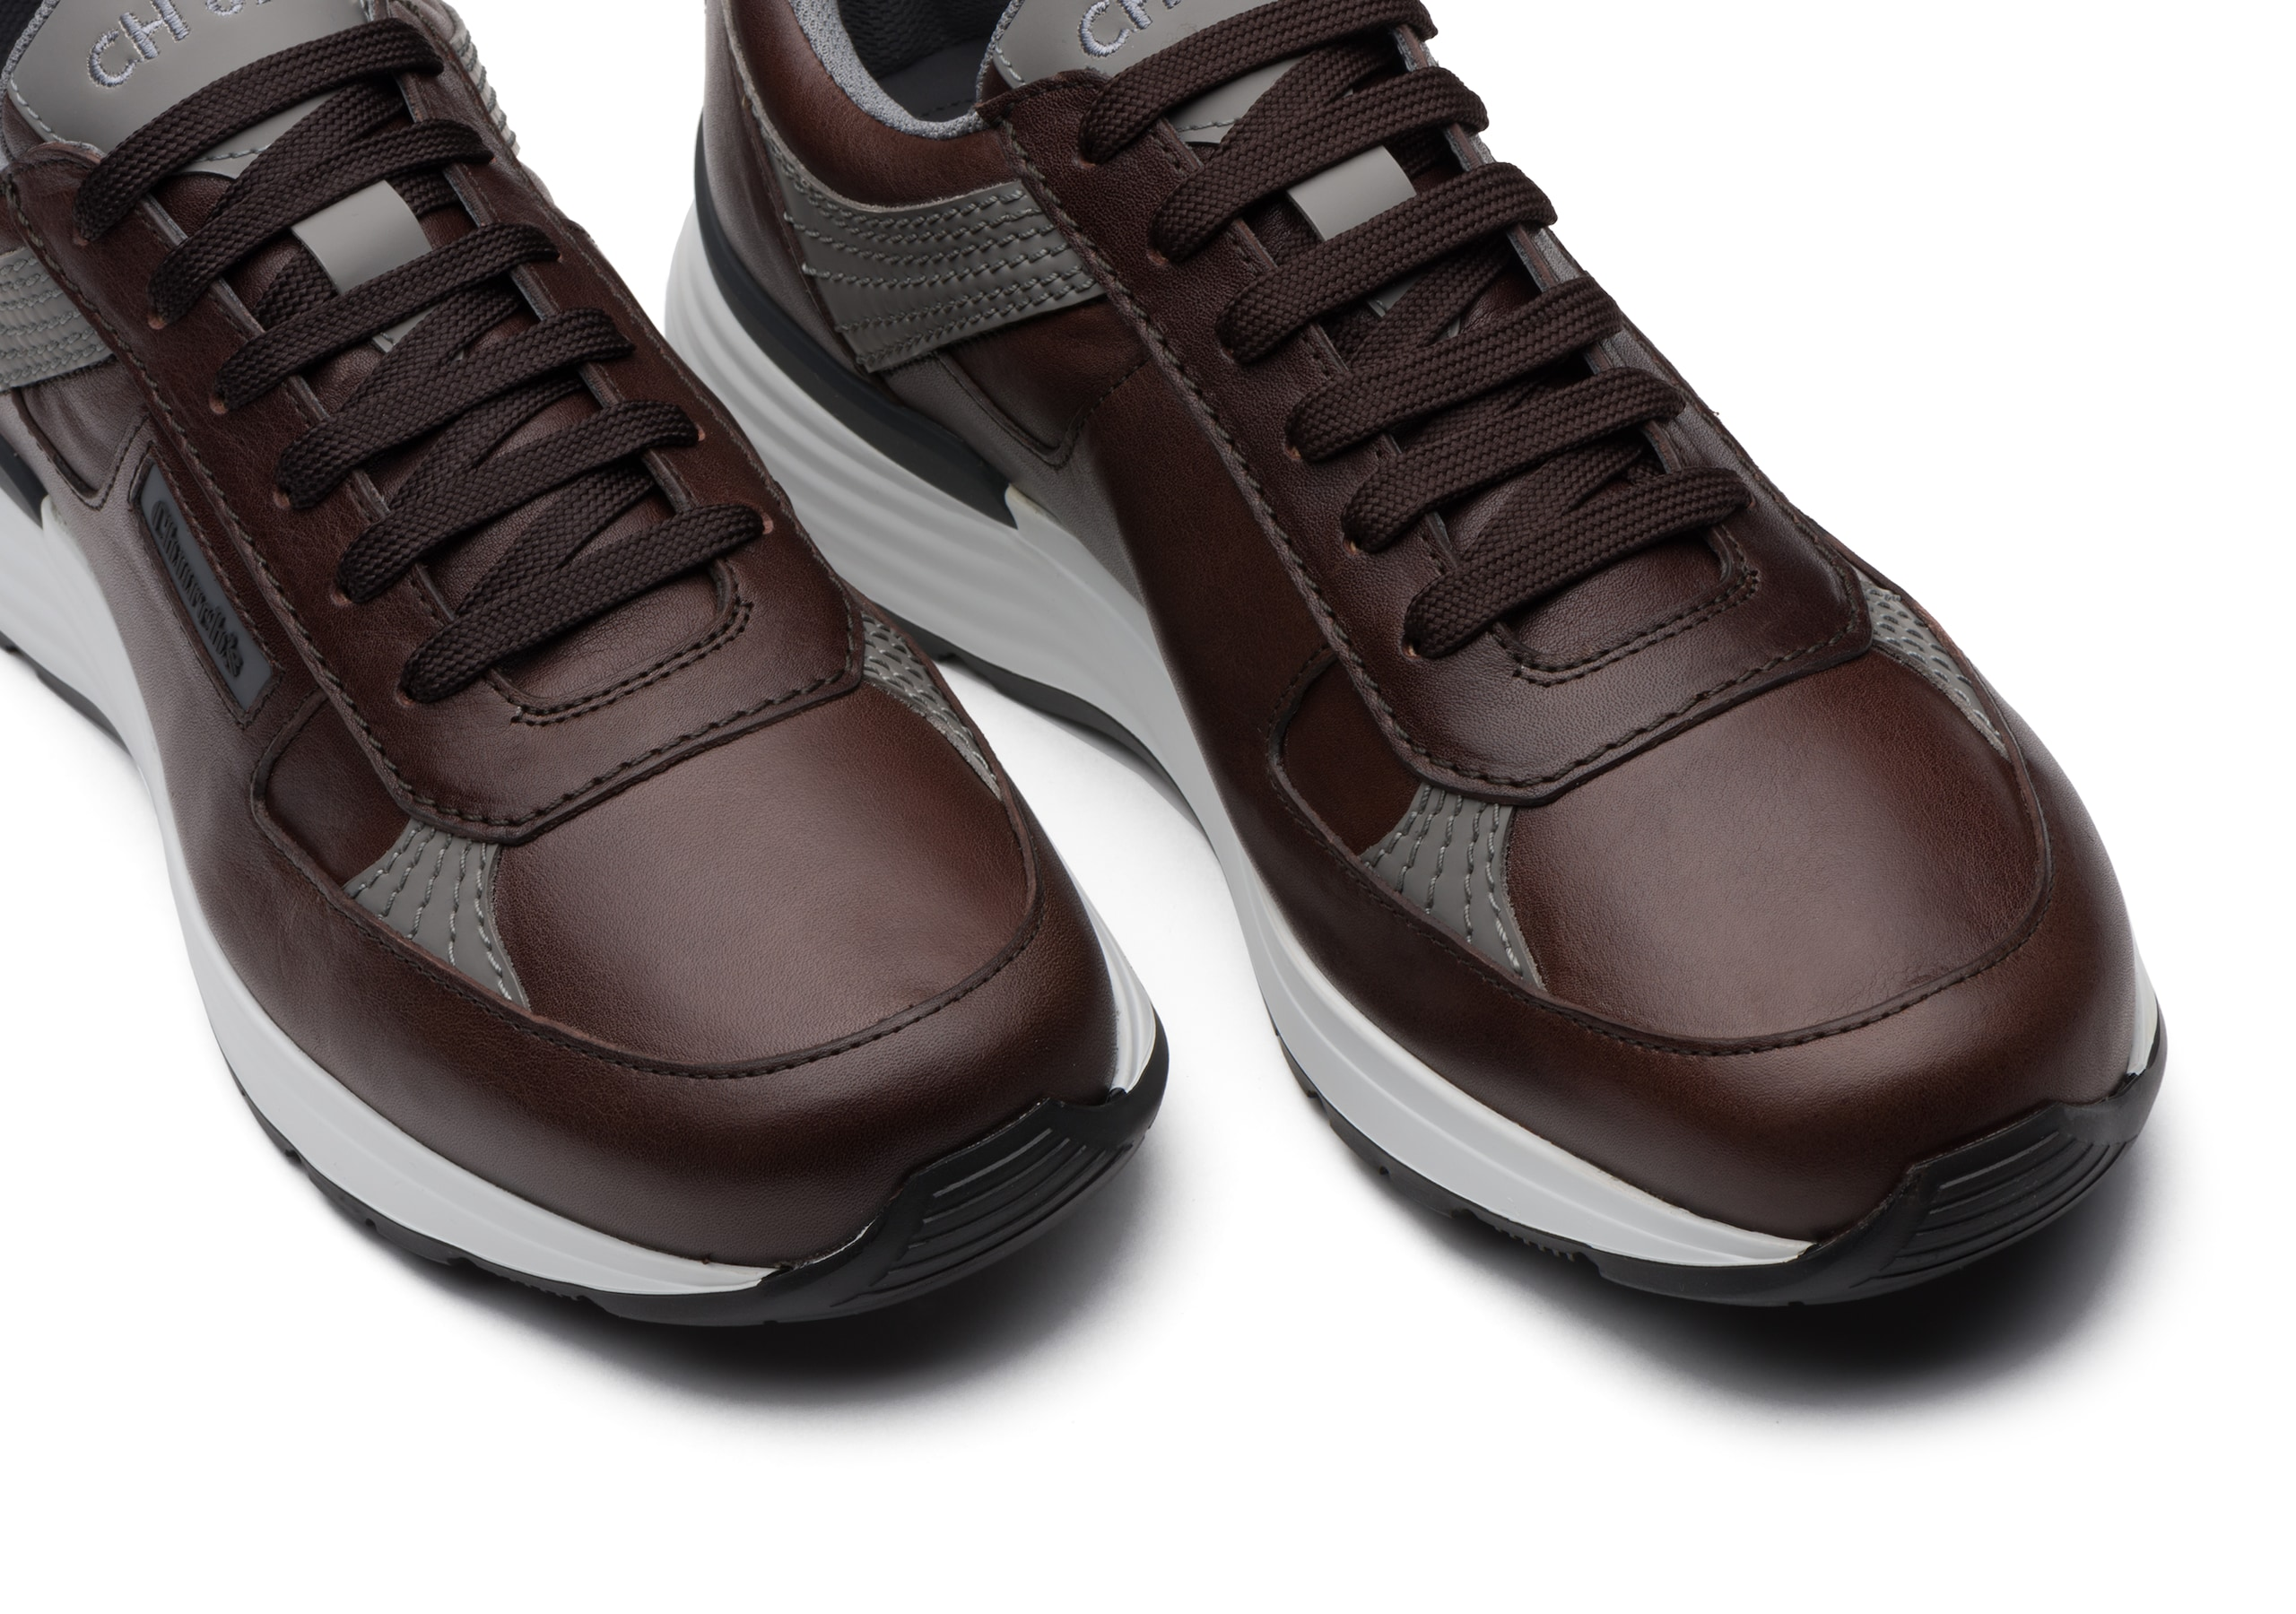 Ch873 Church's Vintage Calf Leather Retro Sneaker Brown